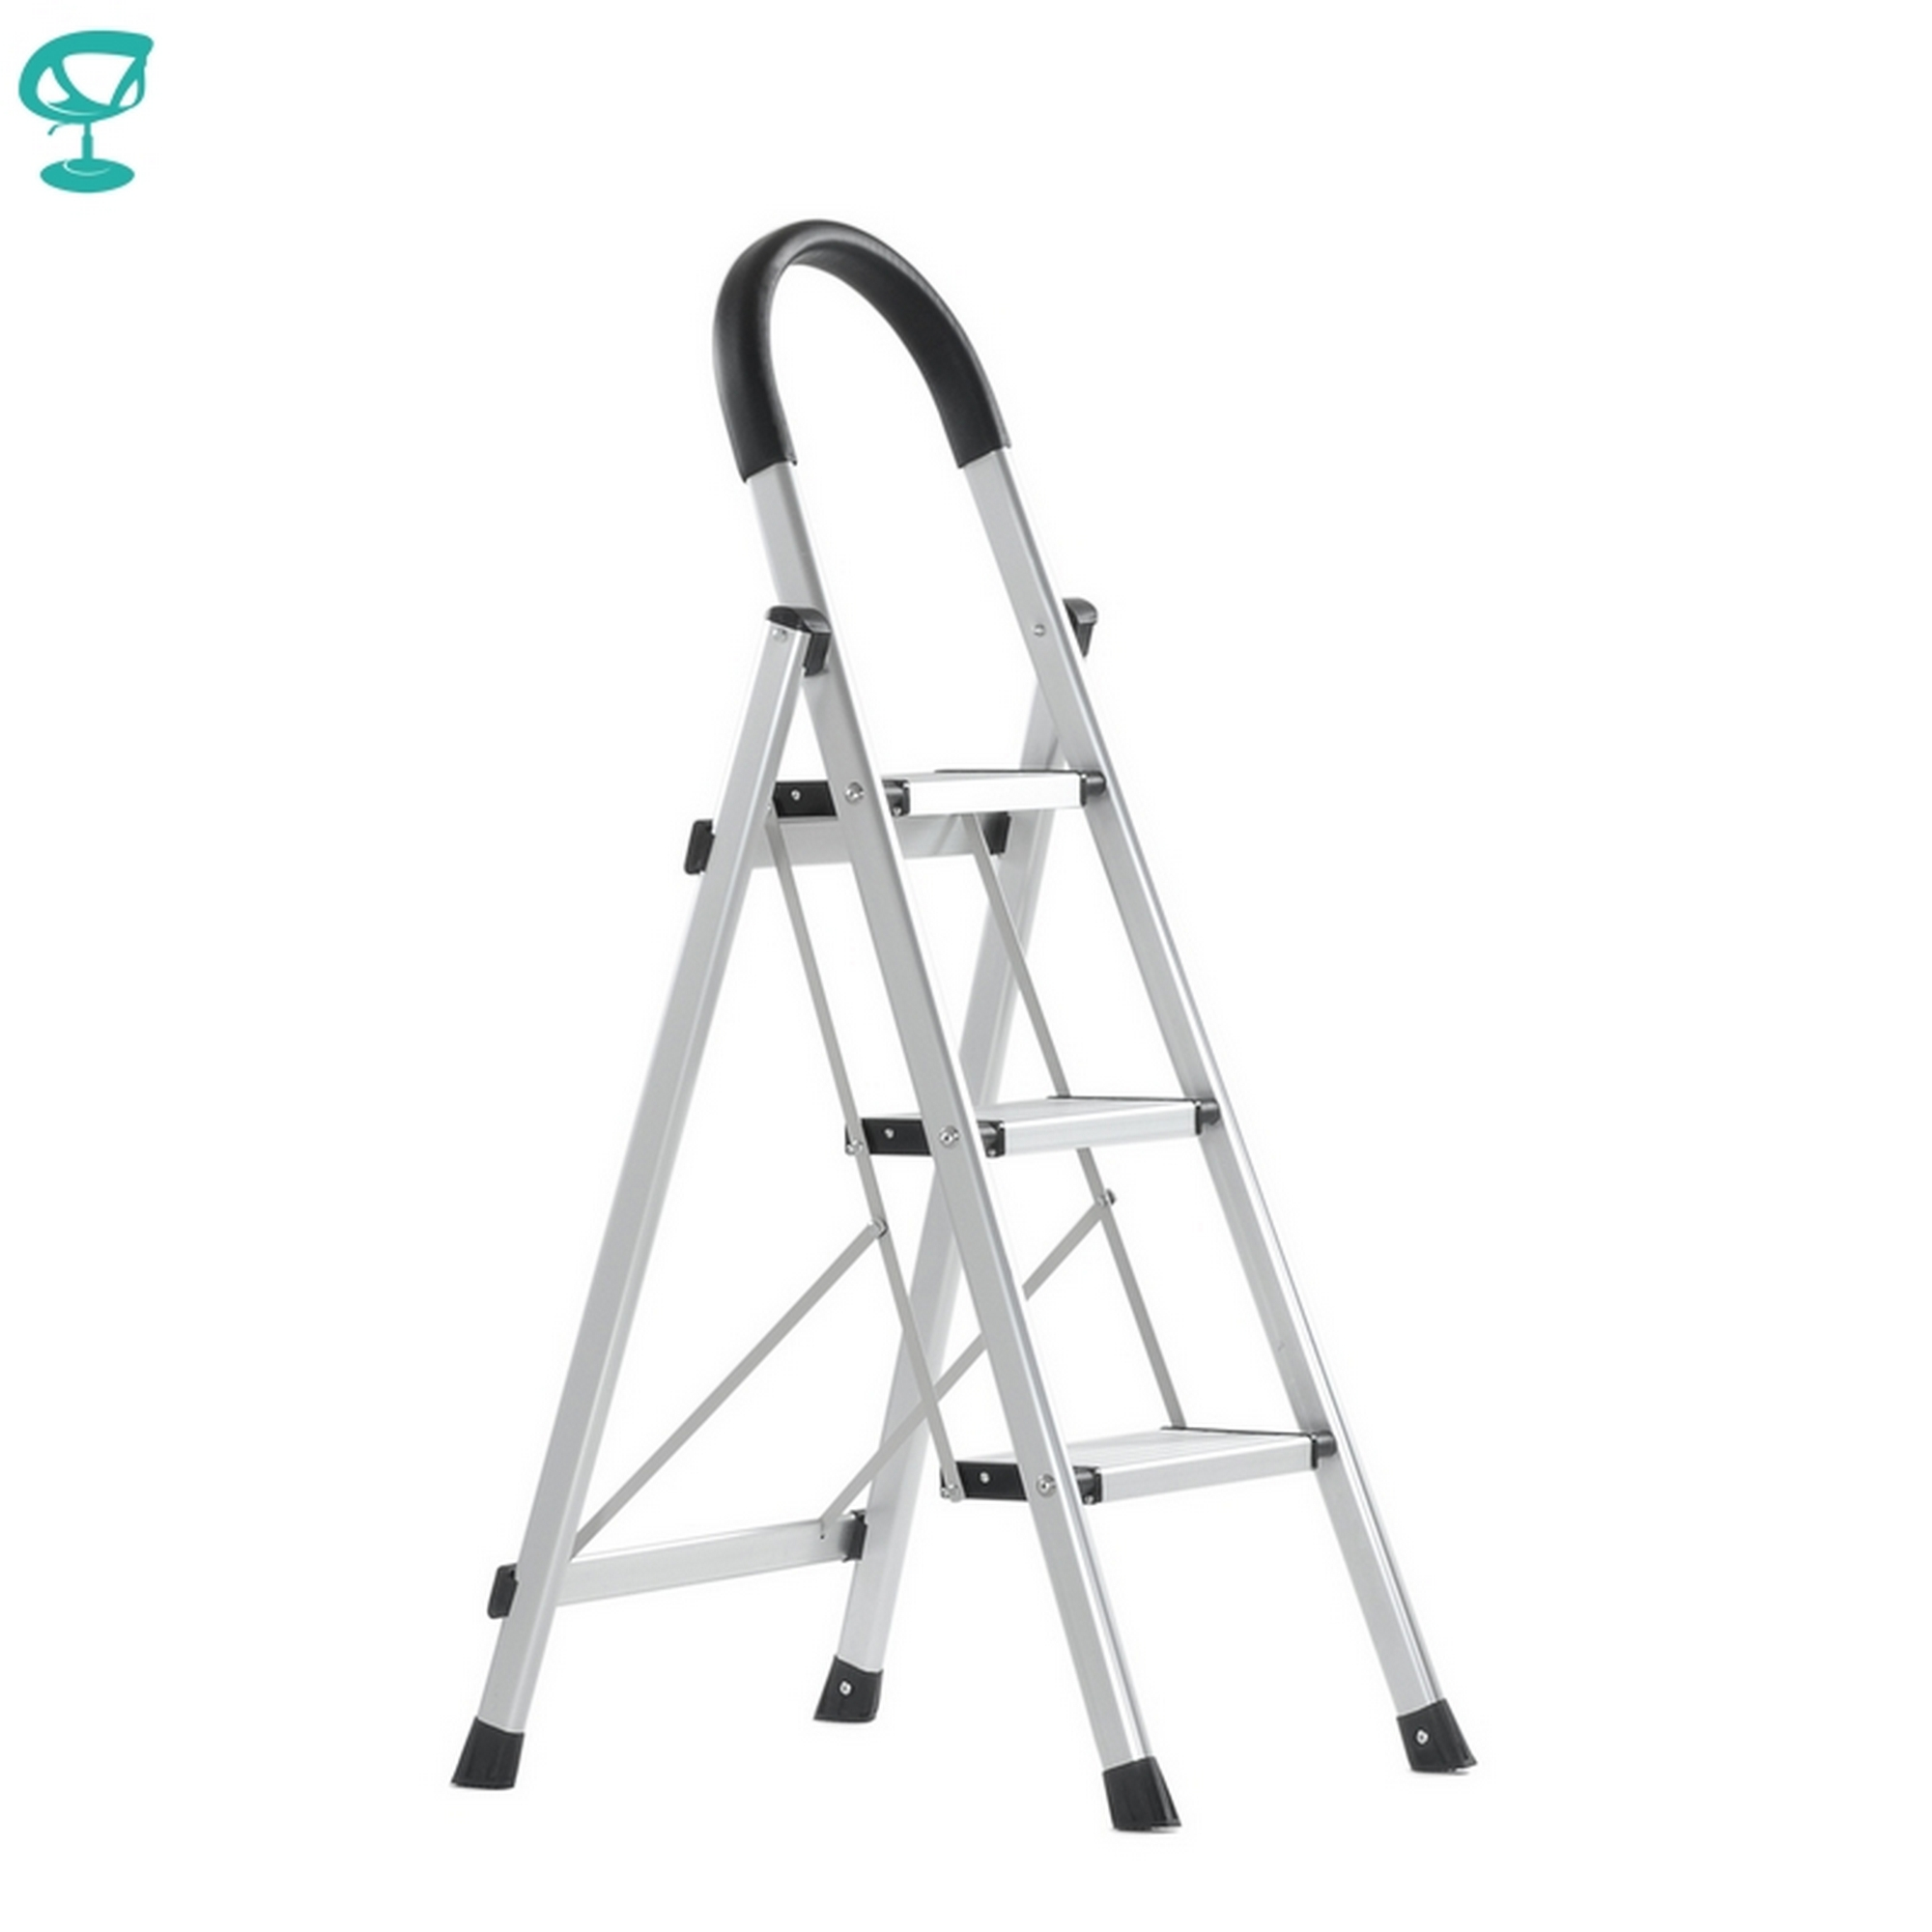 95674 Barneo st-23 ladder aluminum 3 steps of single side max load 150 kg free shipping to Russia